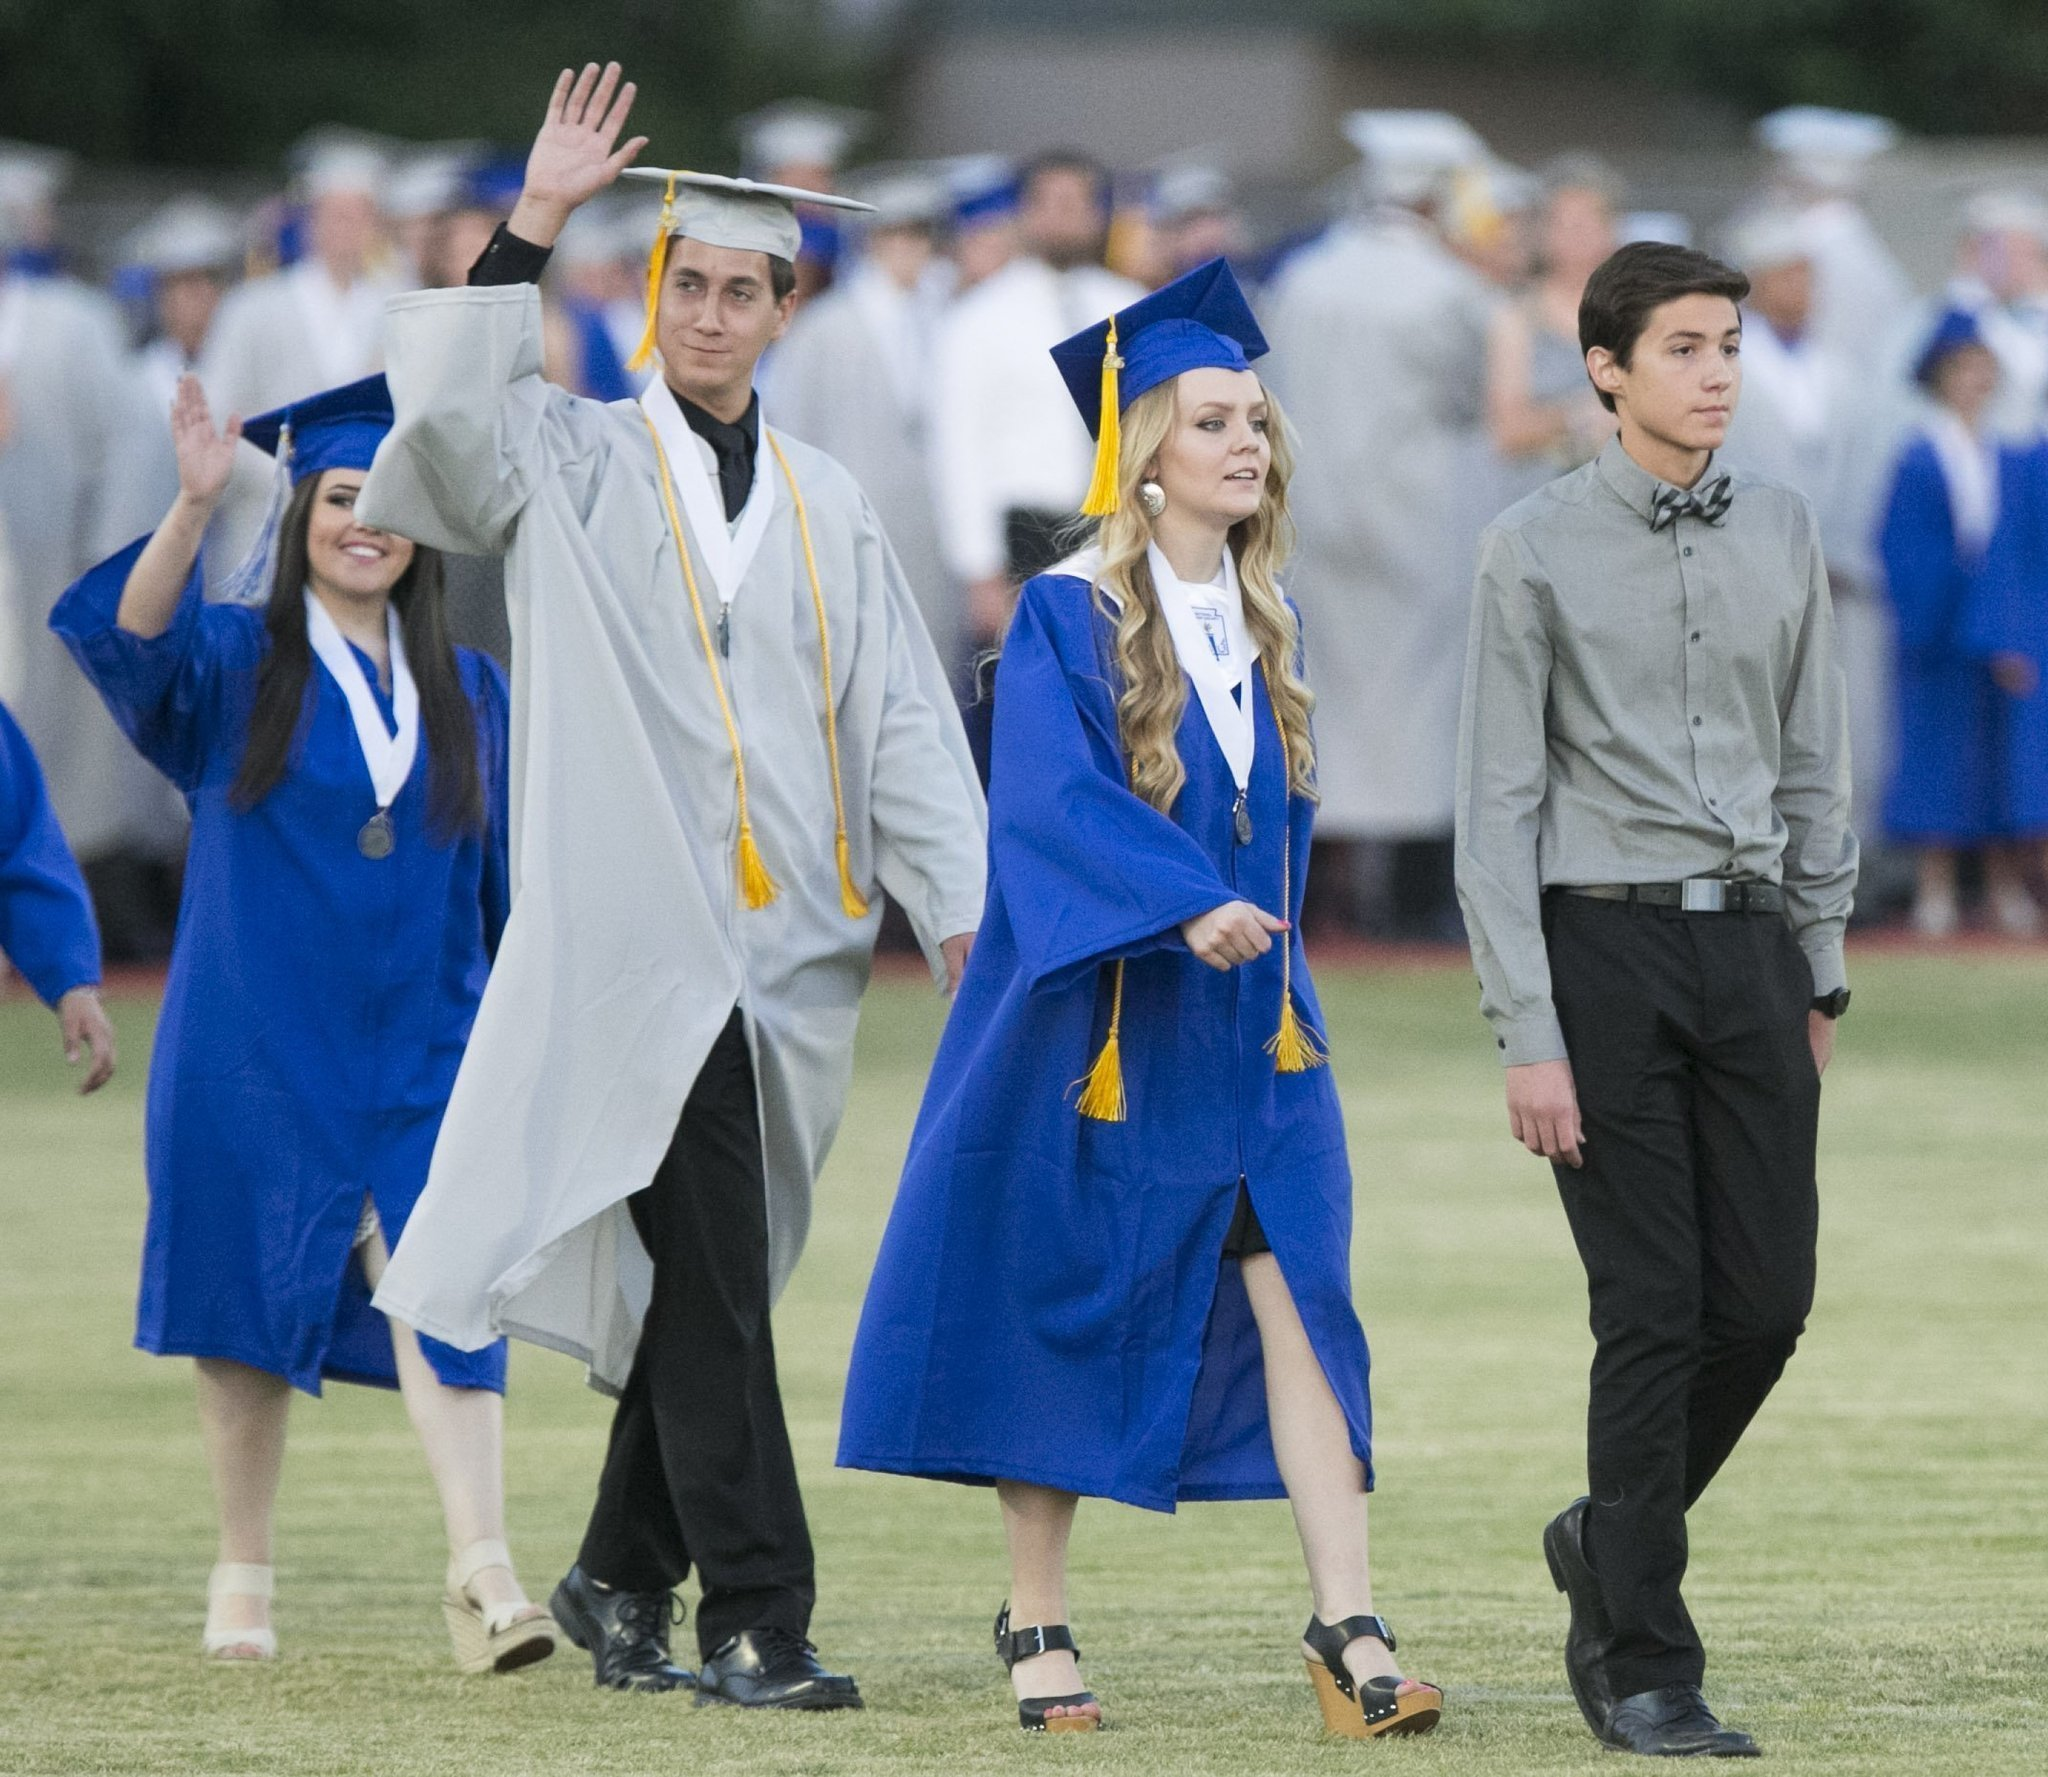 Teen Cancer Survivors Wish To Walk At Graduation Denied The San